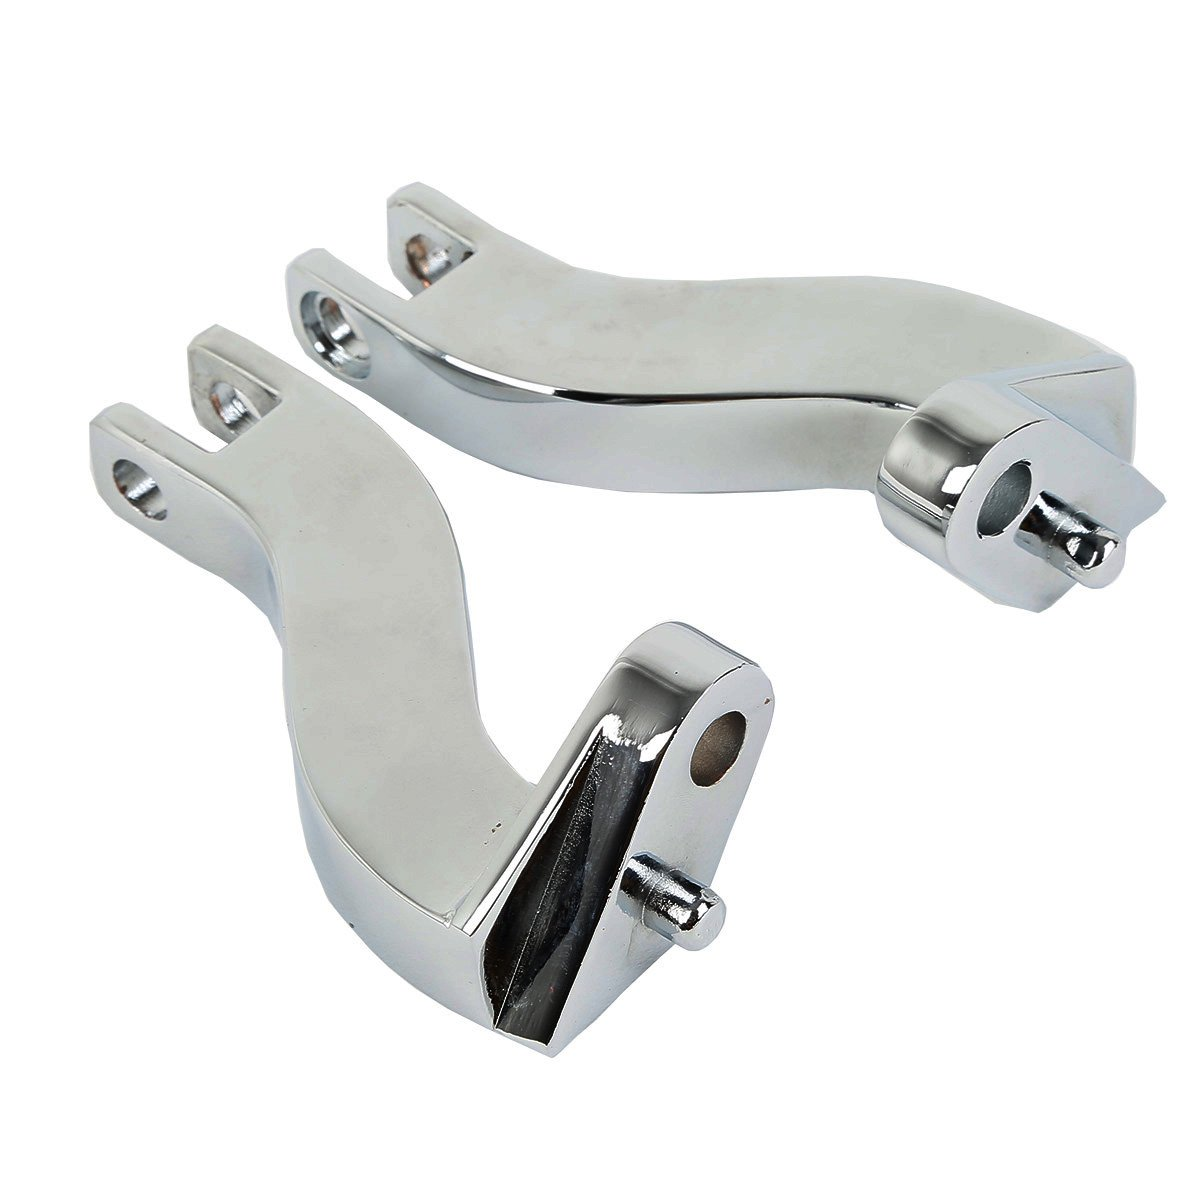 Replaces HD# 50198-97B XFMT 10mm Rear Foot Peg Mount Kits Compatible with Harley Davidson Touring FLHT FLHR FLTR FLHX 1993-2018